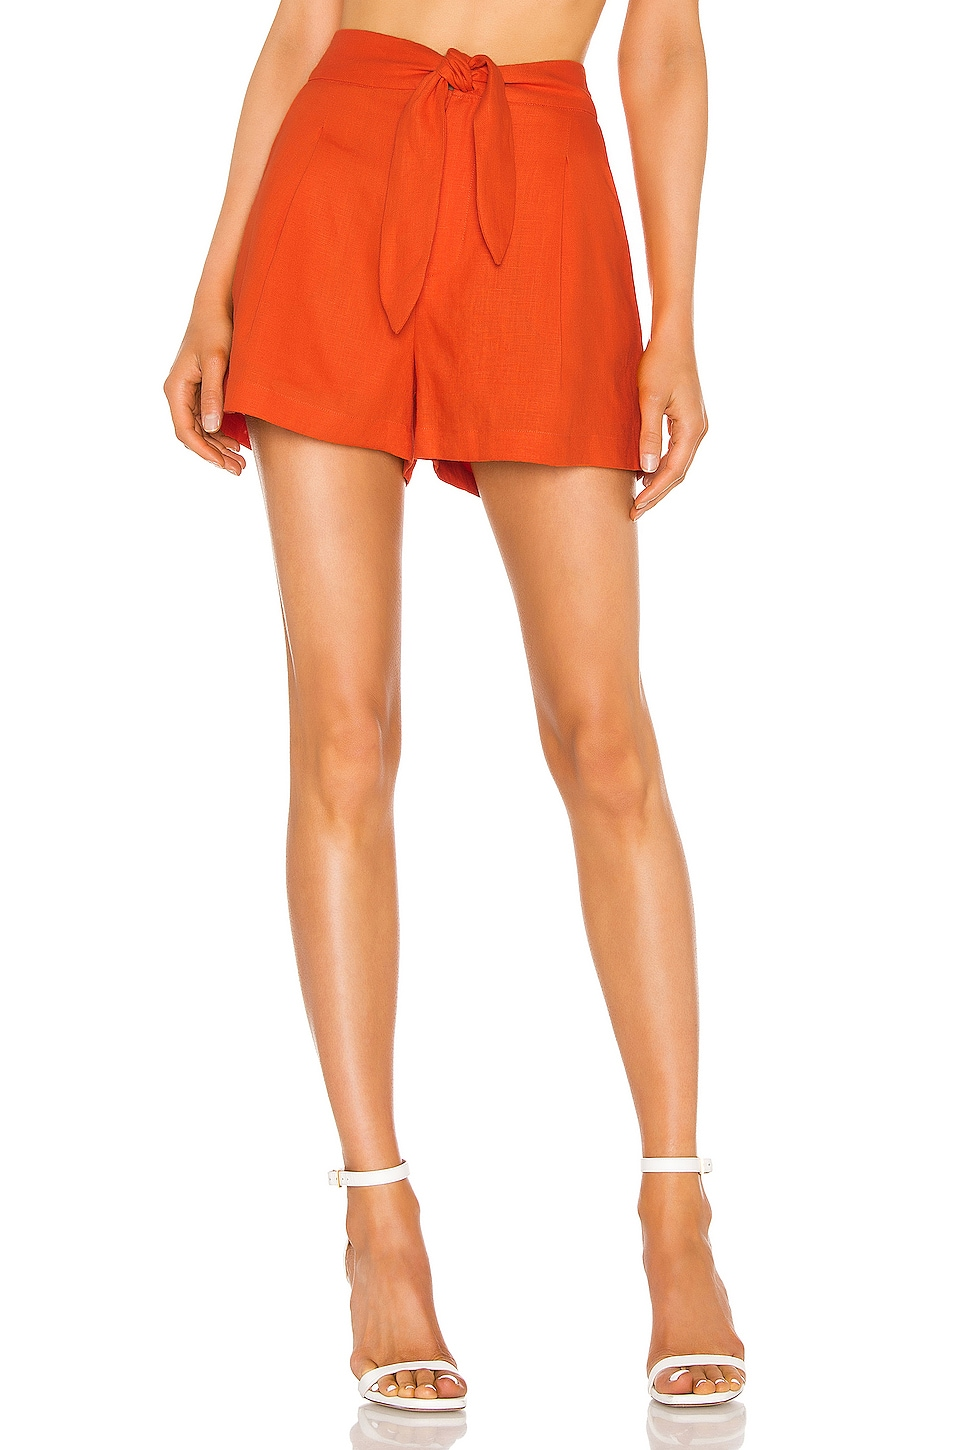 Joie Carden Short in Warm Terracotta